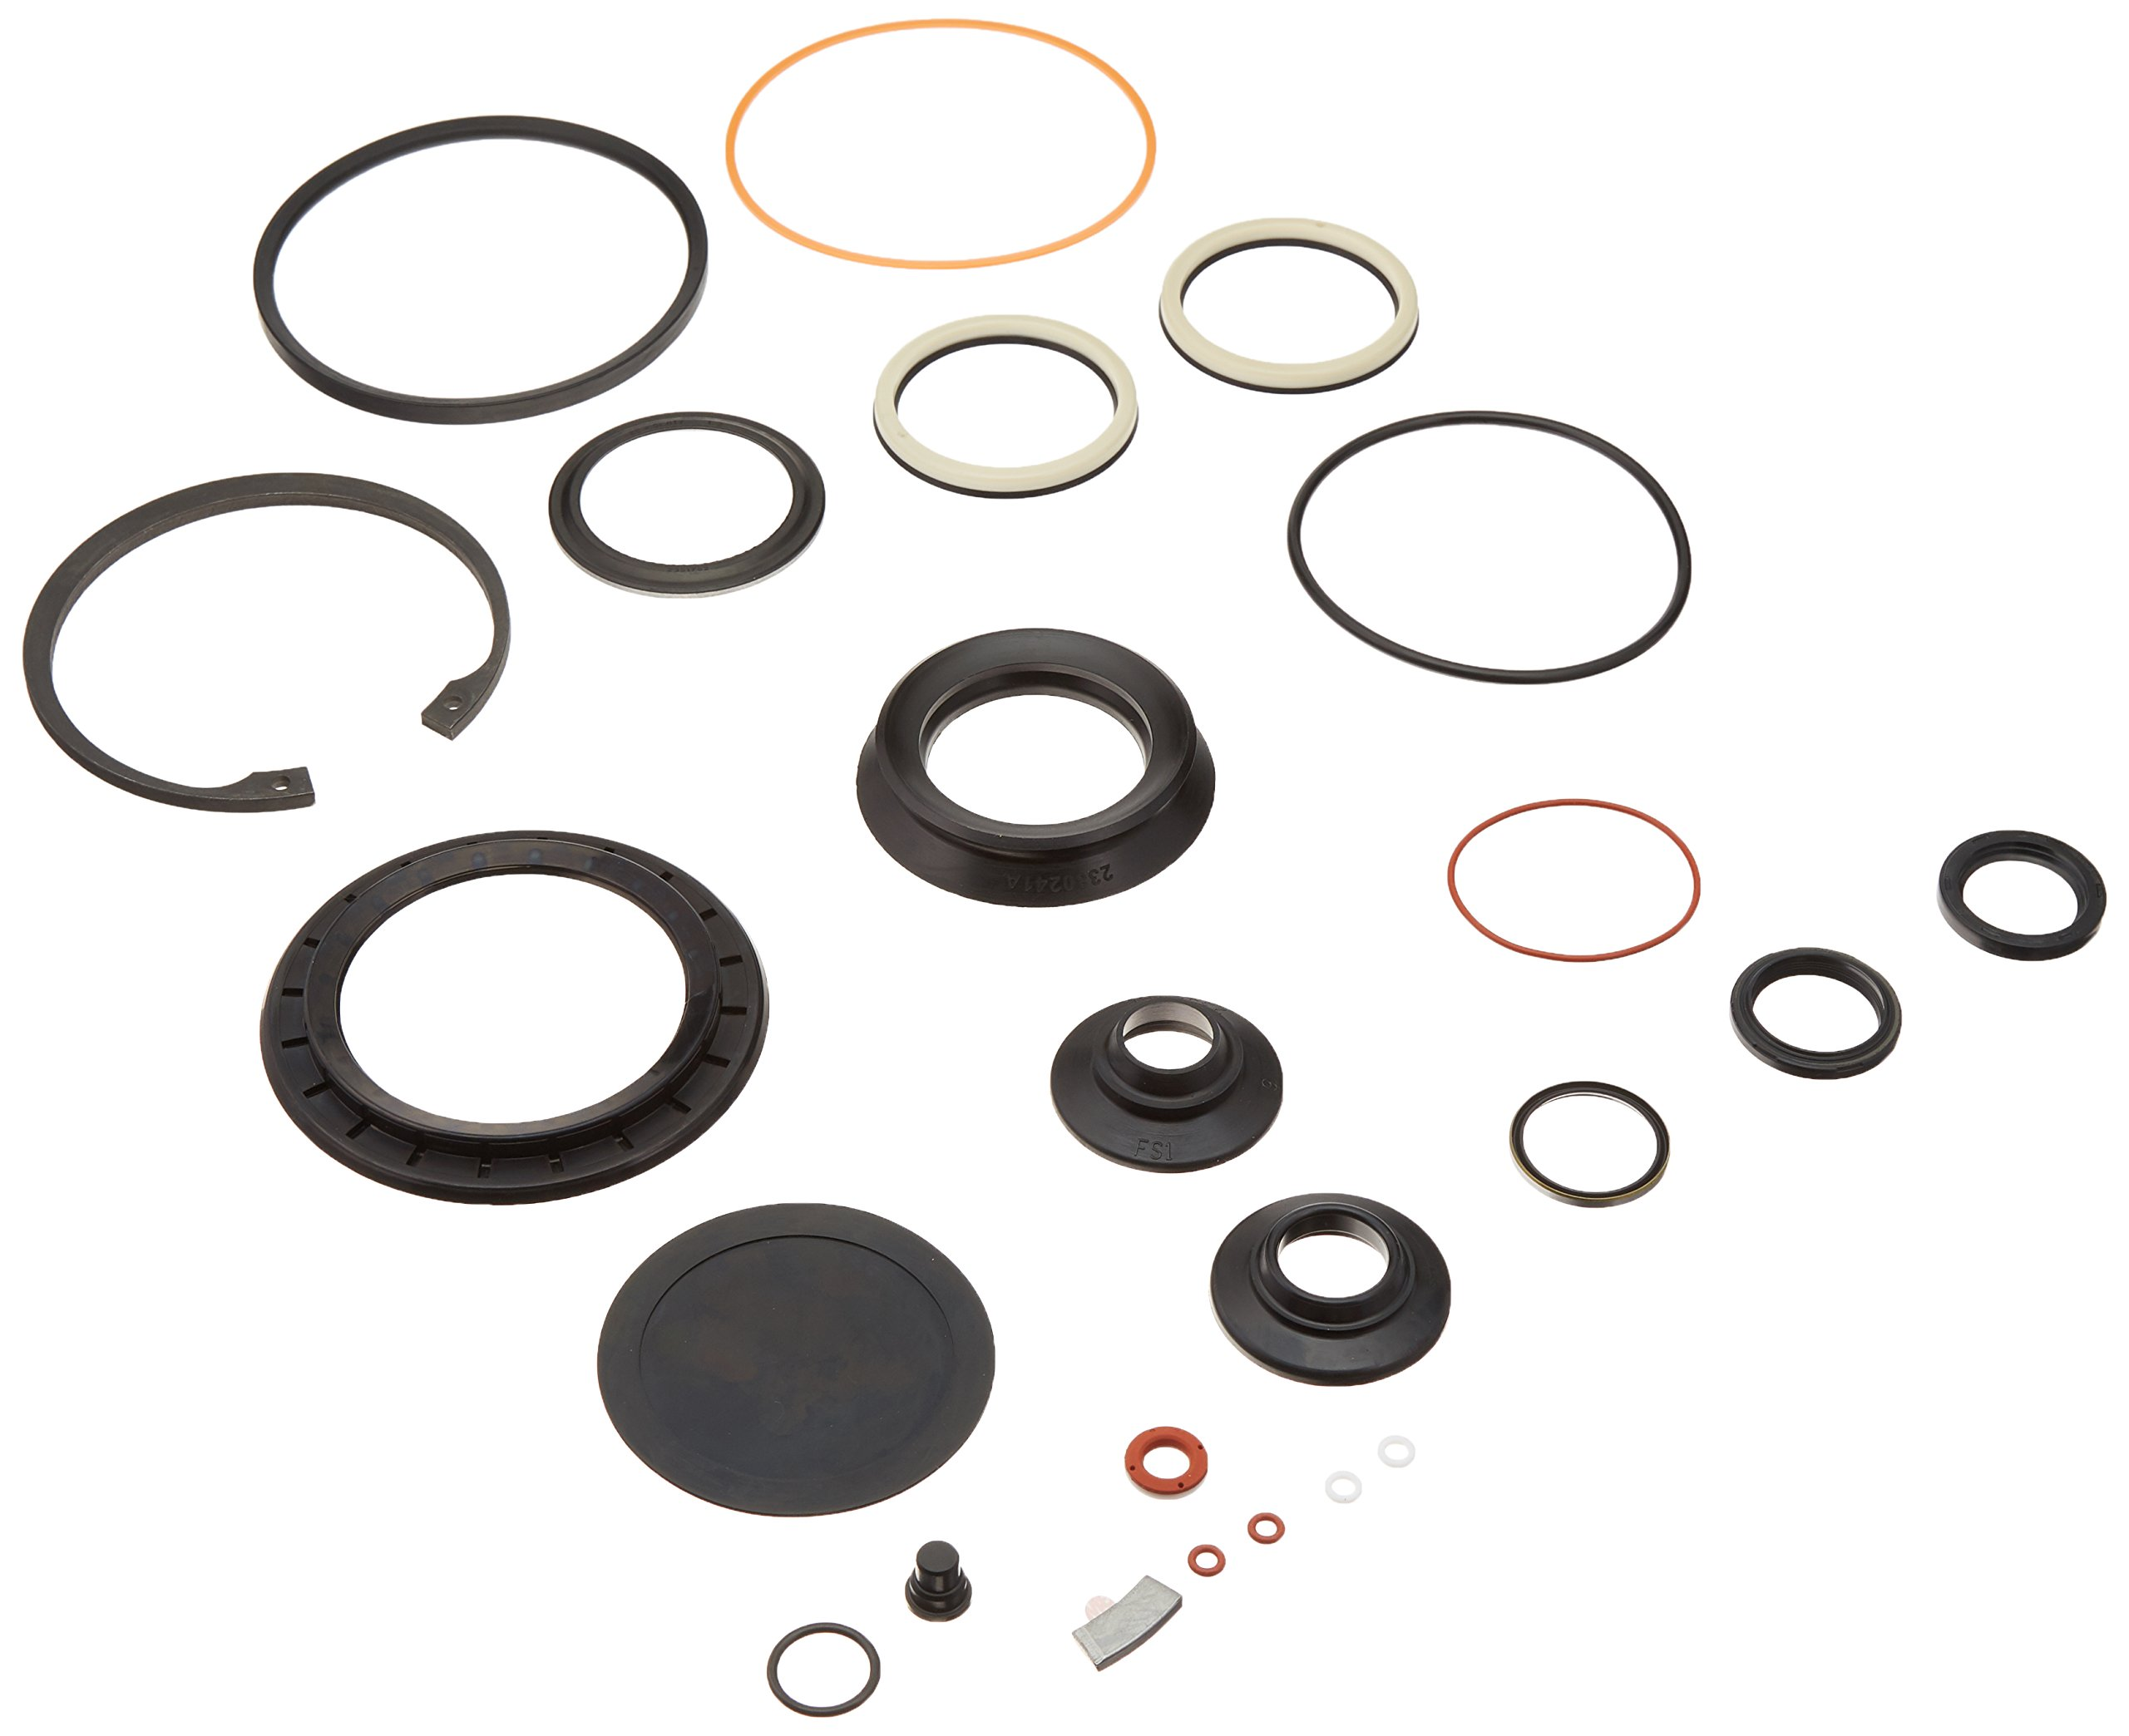 R. H. Sheppard 5545561 Combined Seal Kit with Snap Ring (5544861, 5545401, 5545321)